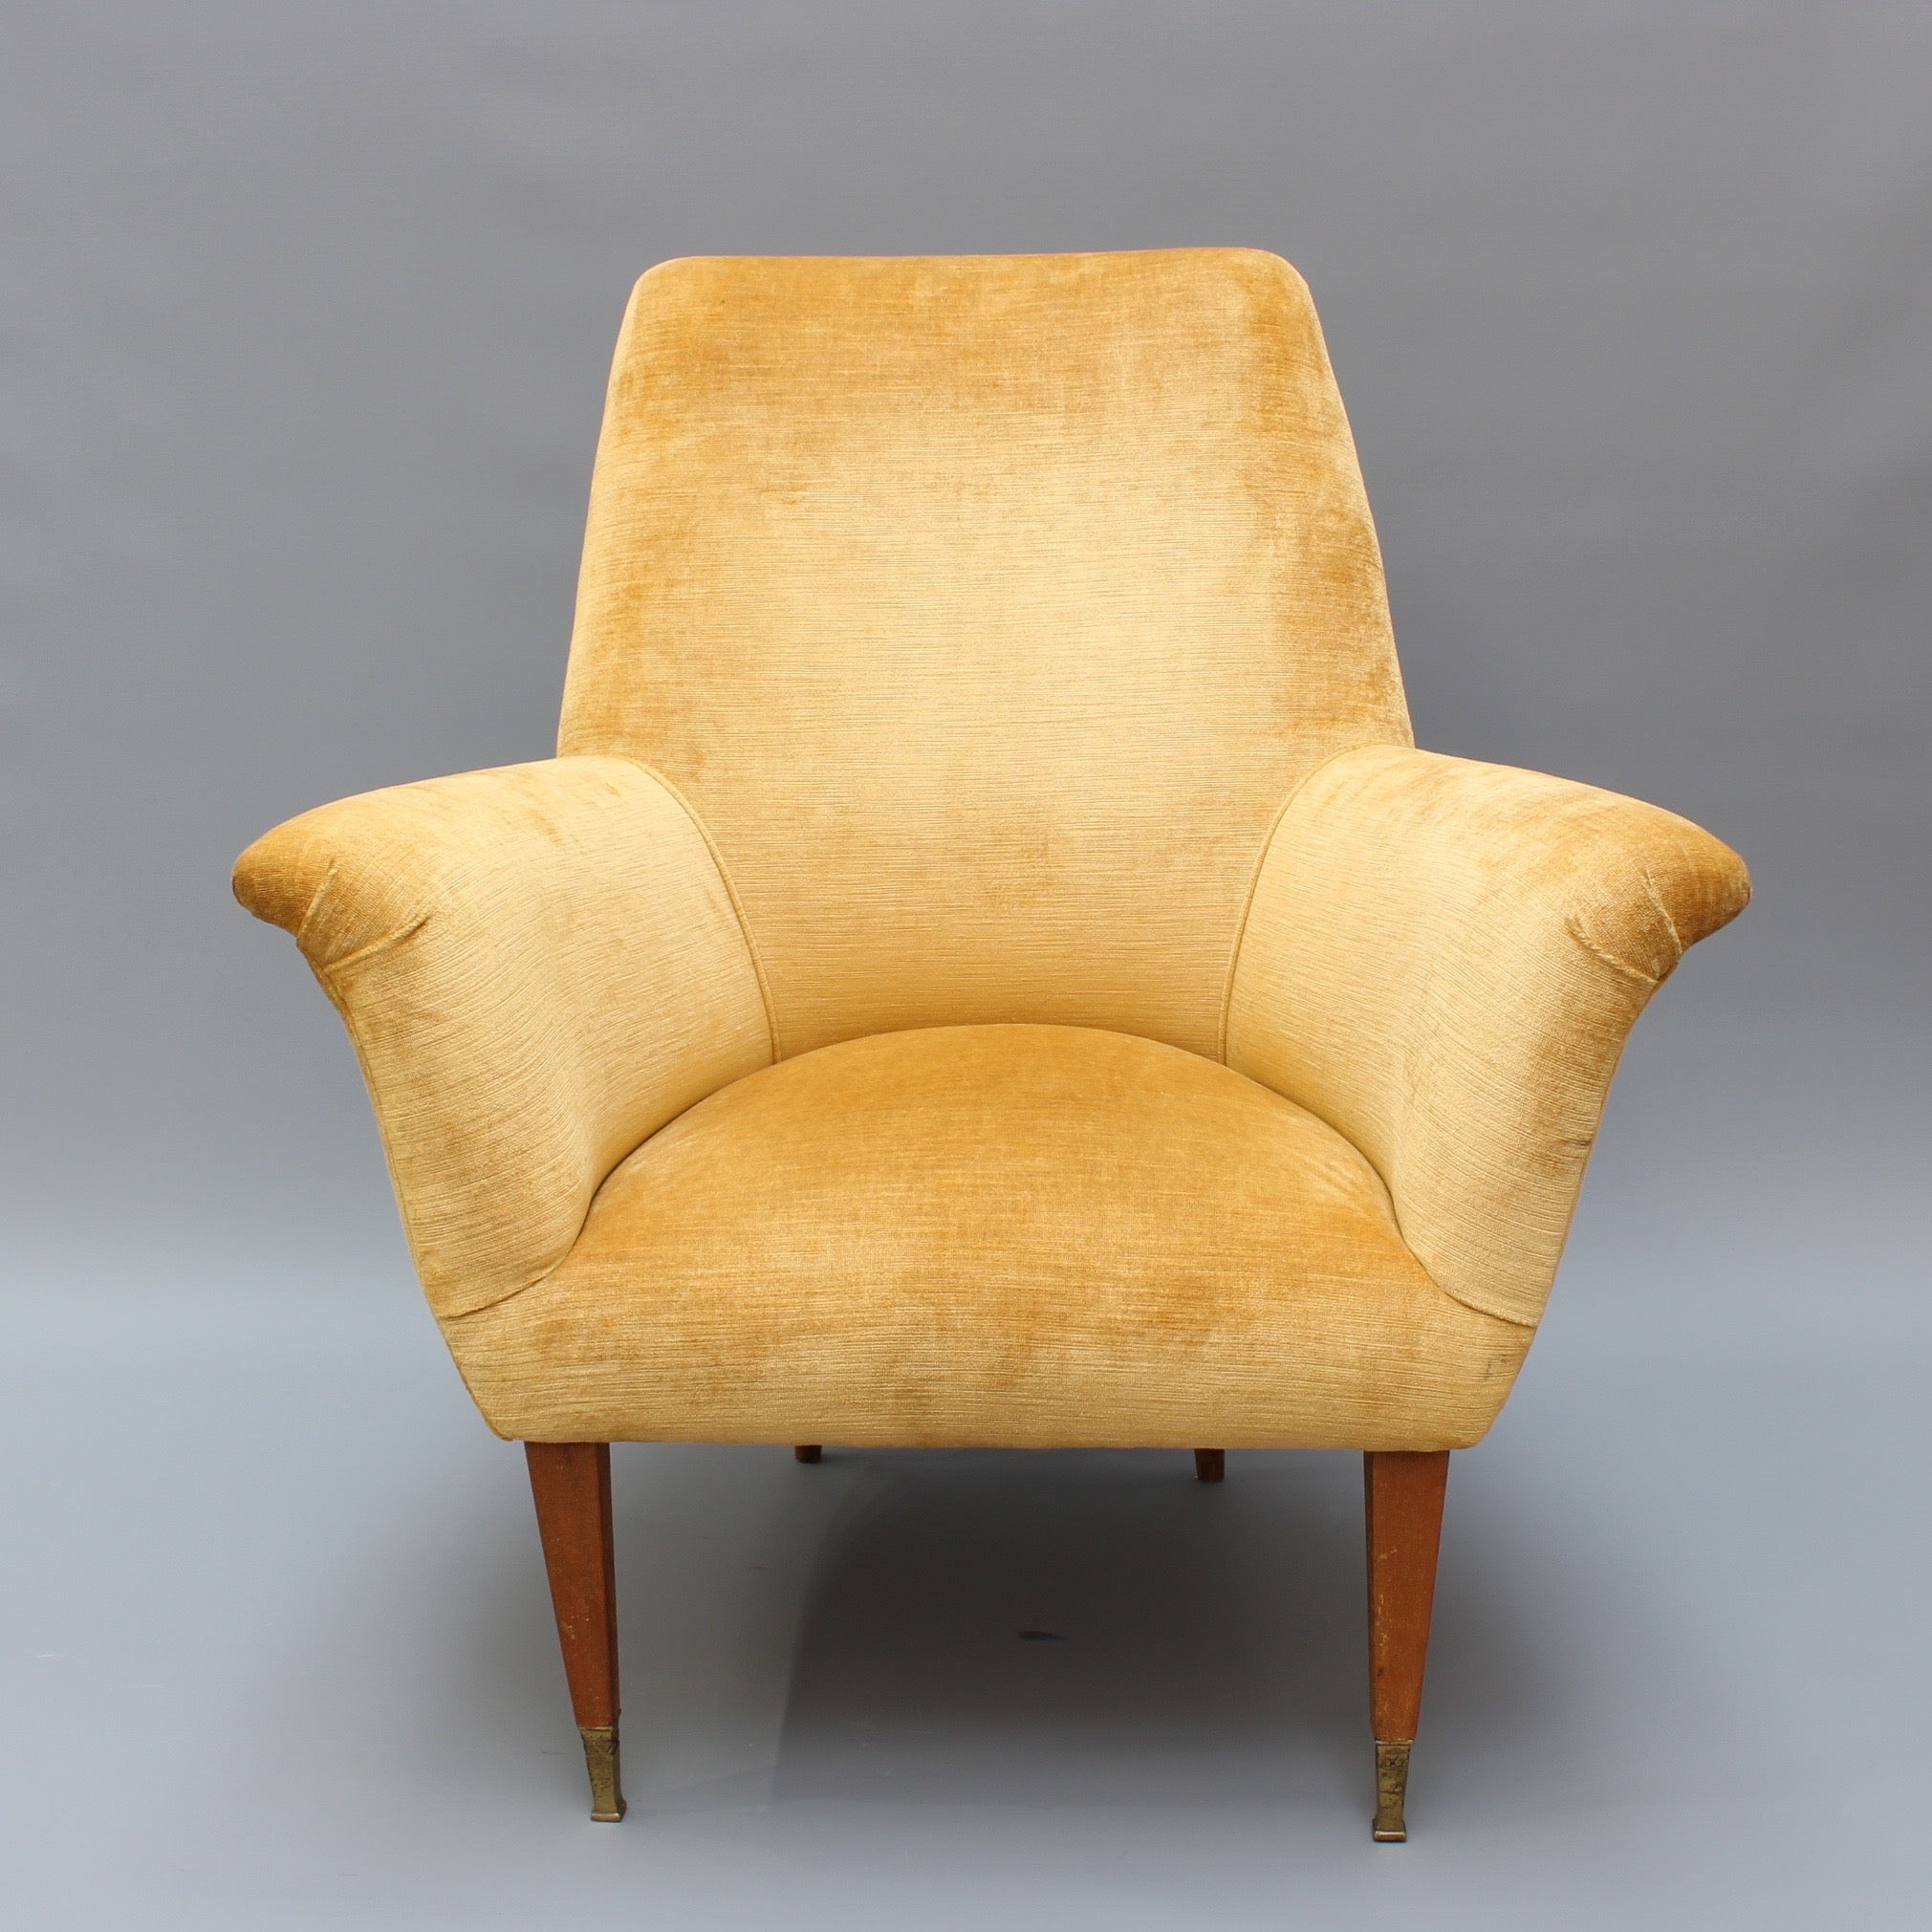 Pair of Mid-Century Italian Armchairs in Golden Velvet (circa 1950s)